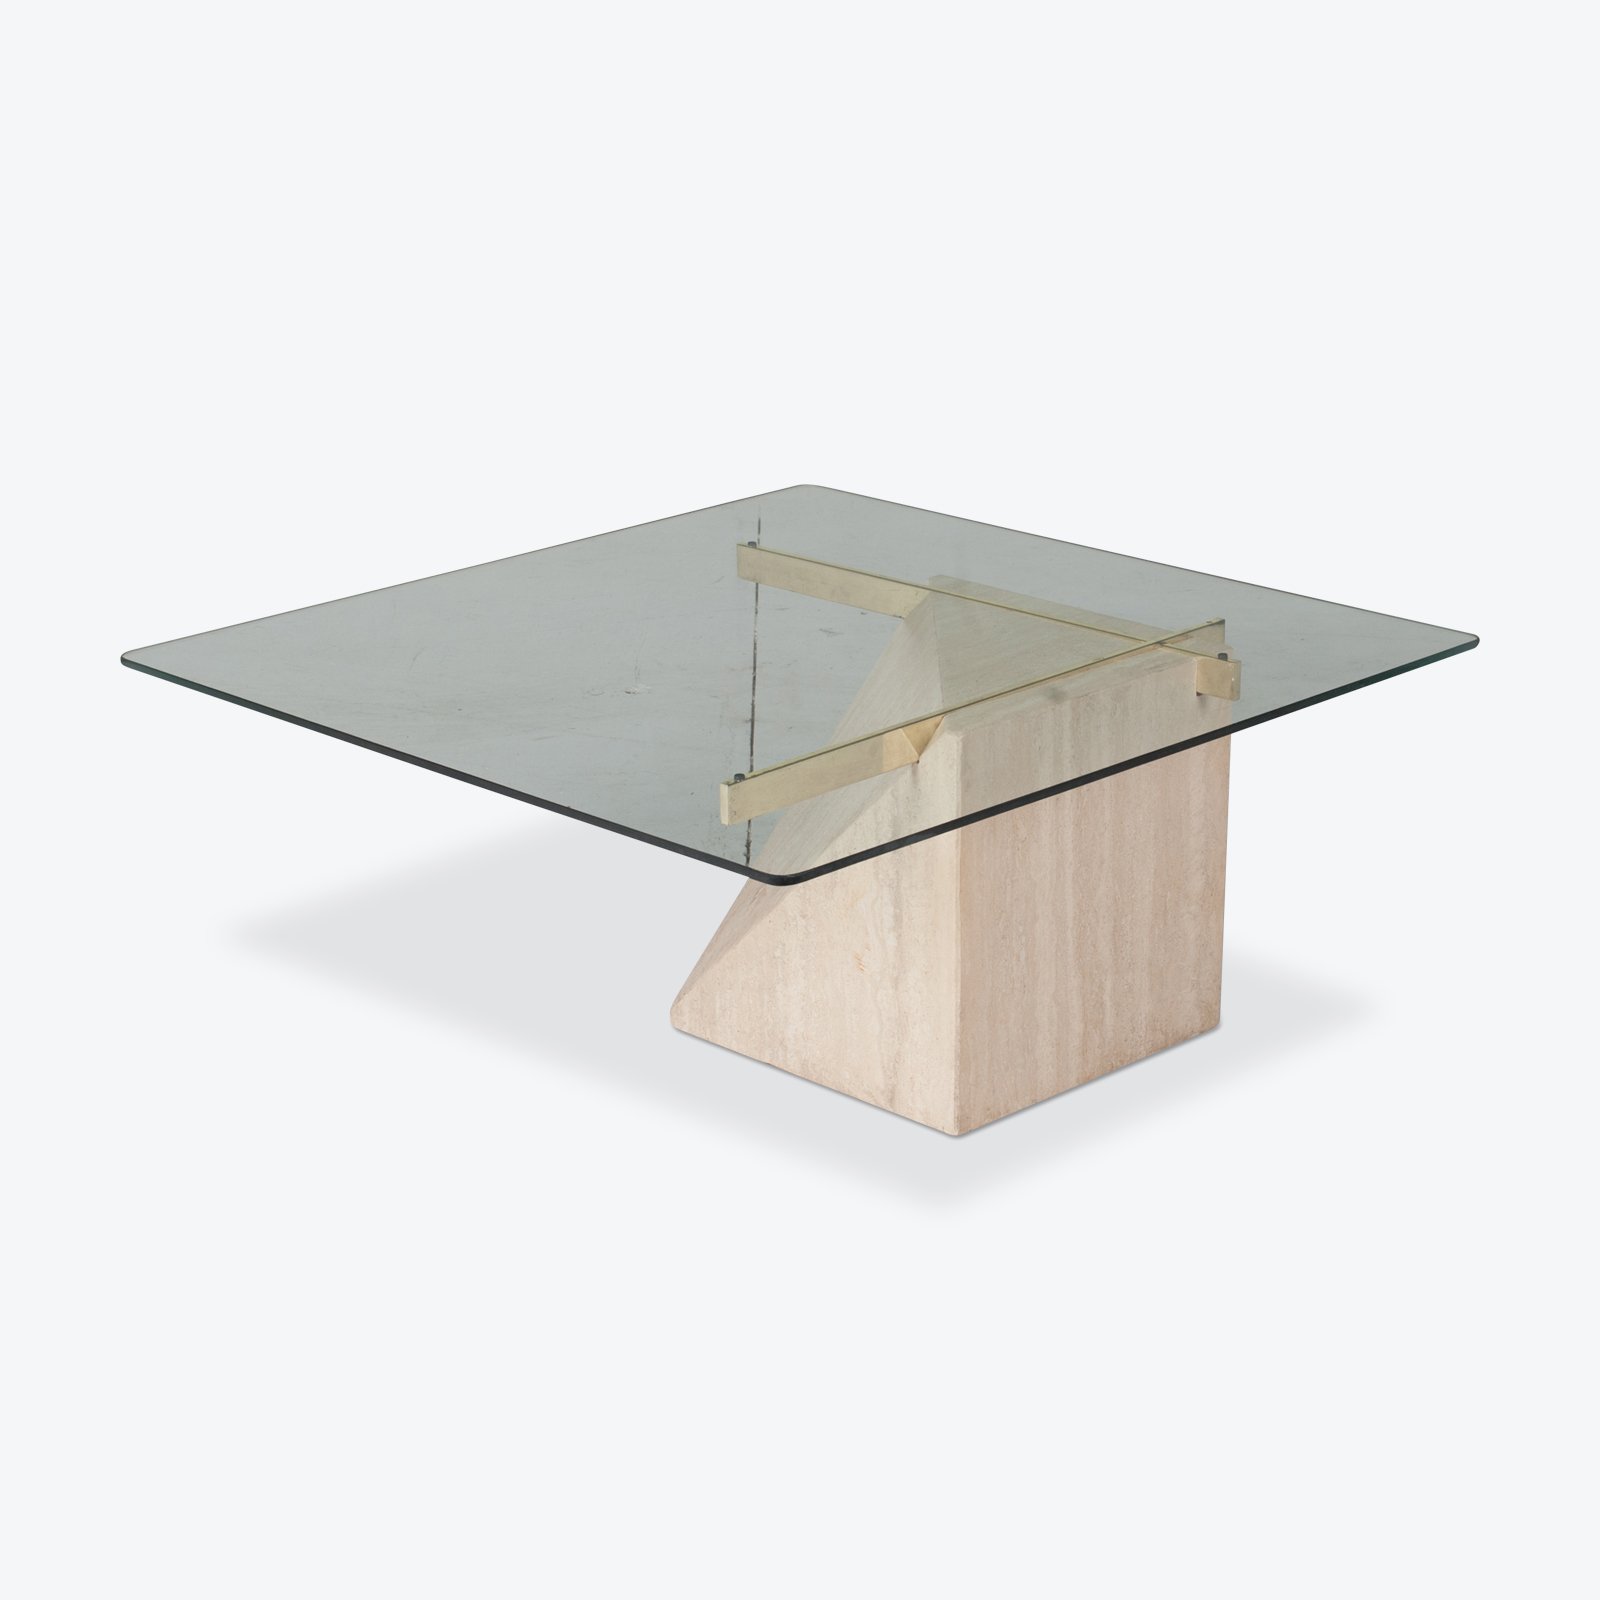 Coffee Table By Artedi In Travertine, Cantilevered Glass And Brass, 1970s, Italy Hero